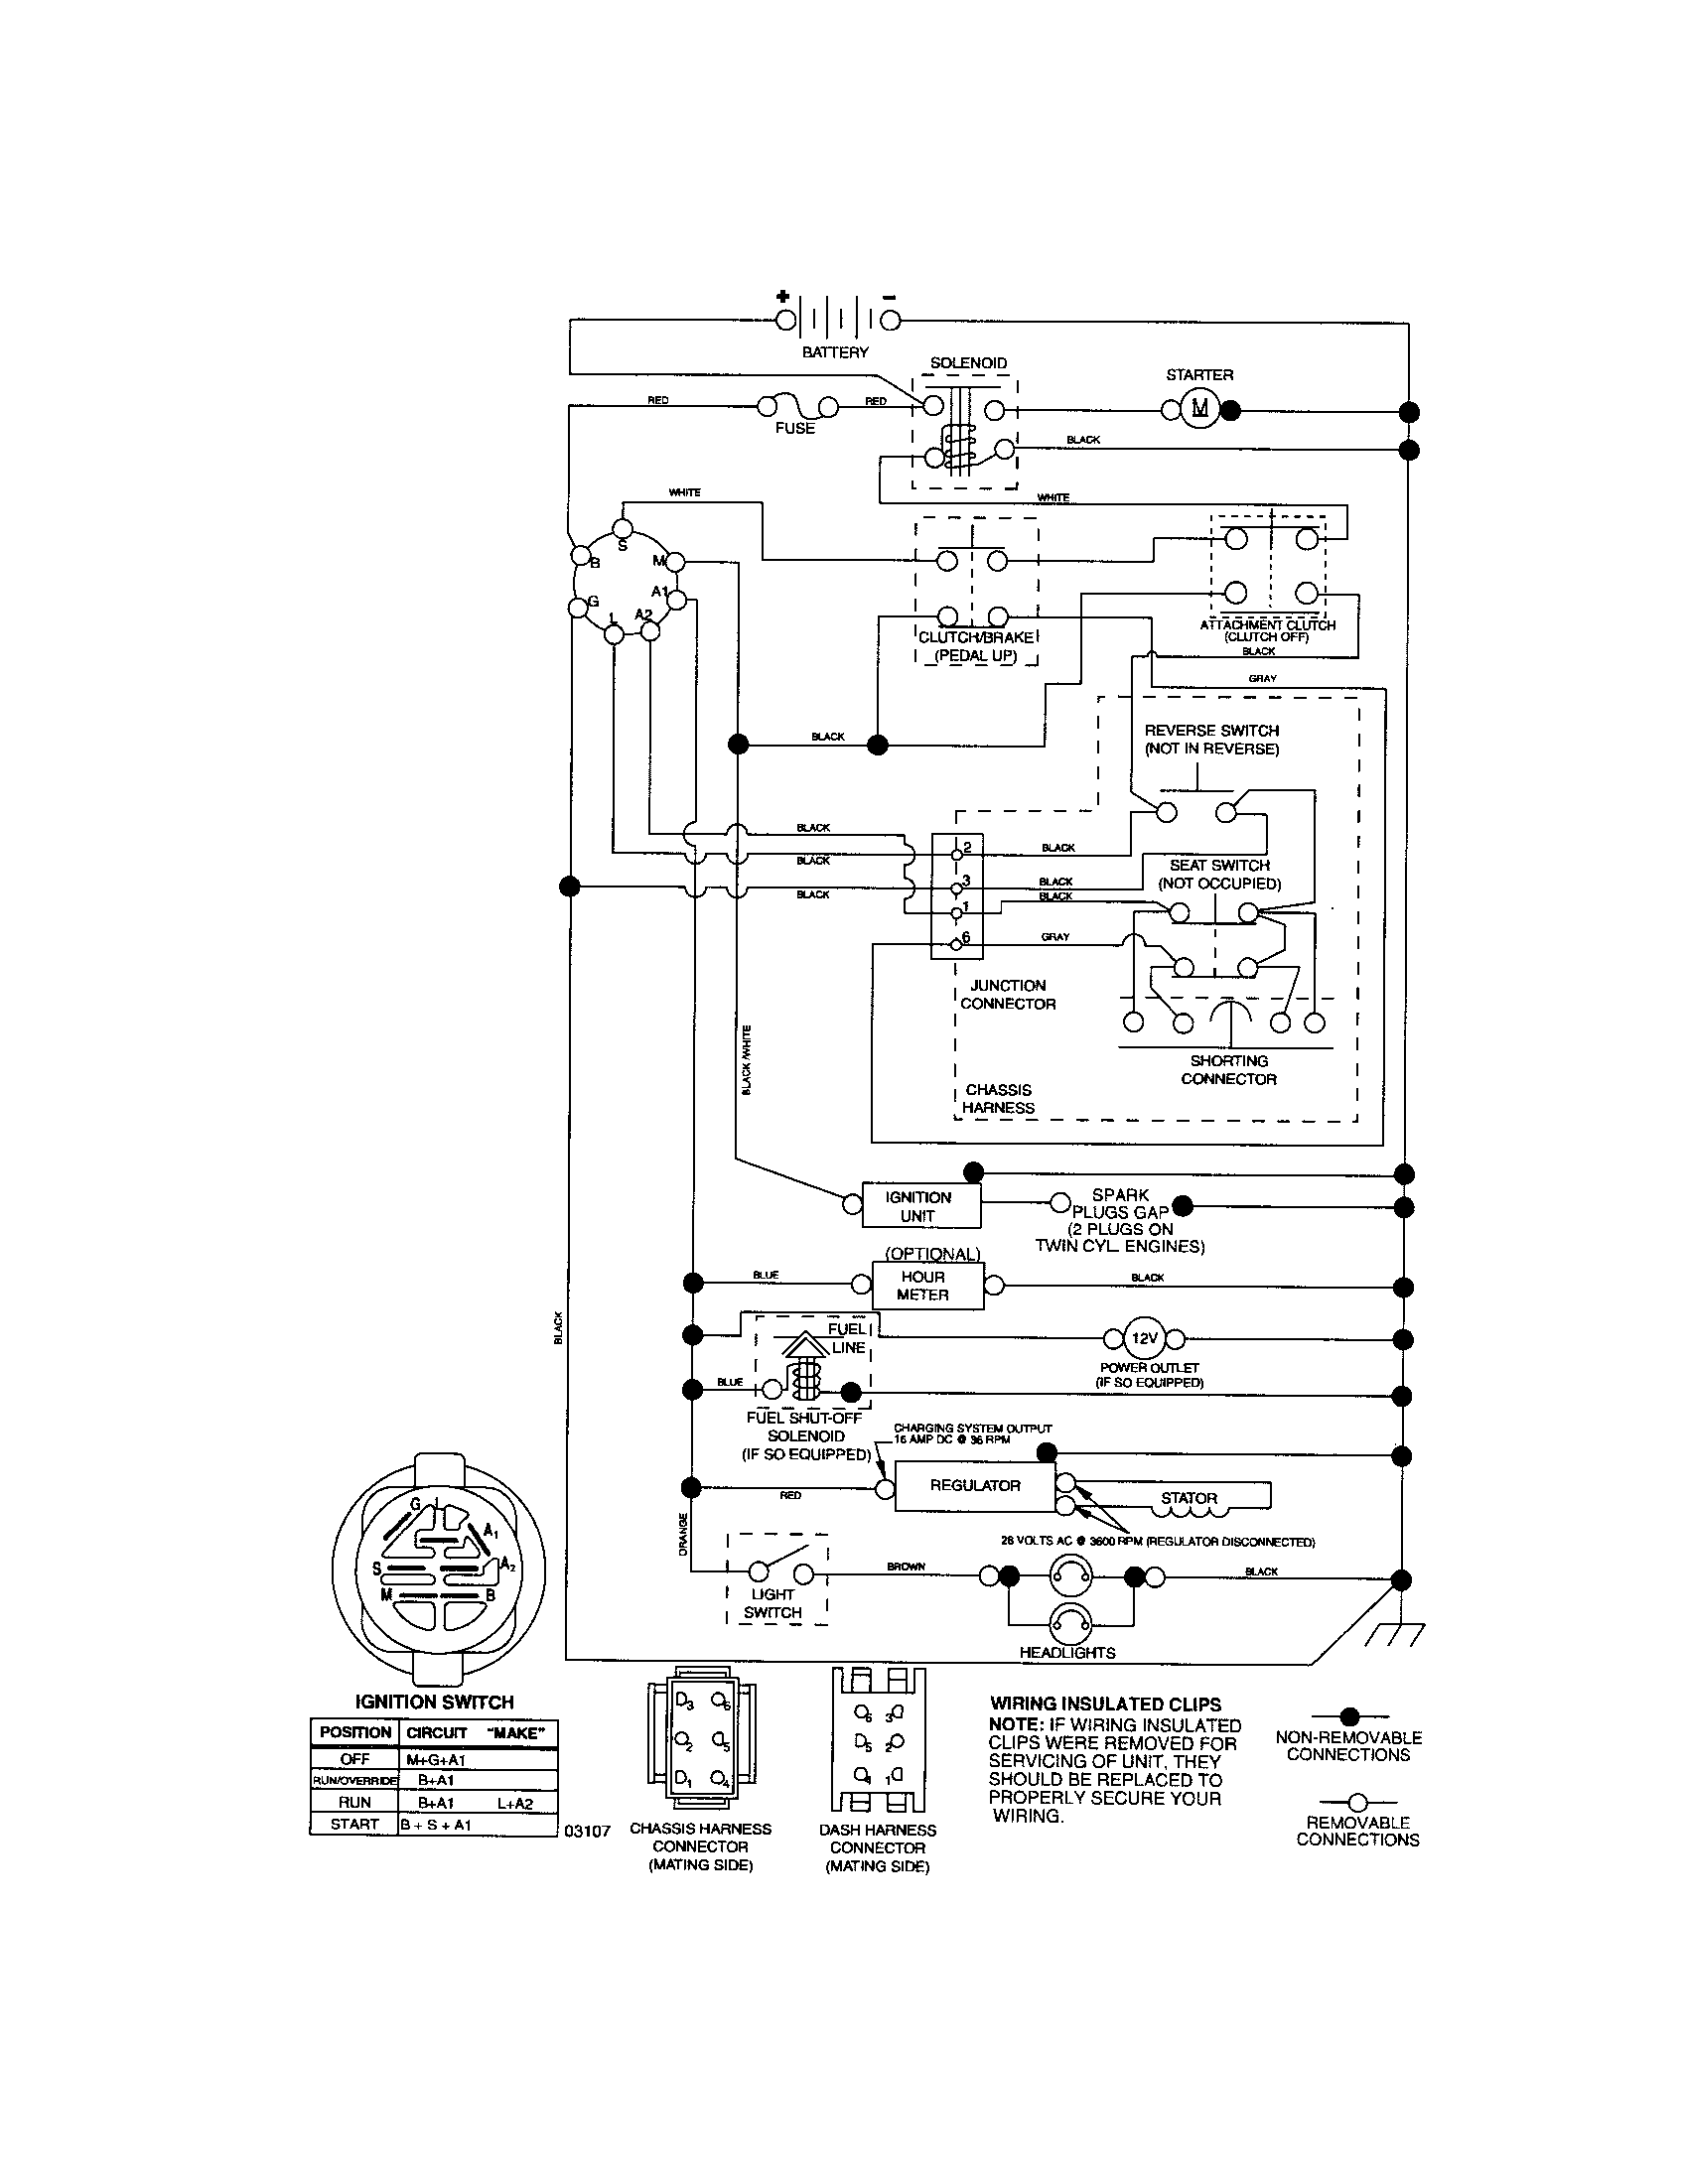 hight resolution of mower wiring schematic wiring diagram val 1 2 hp murray lawn mower wiring diagram